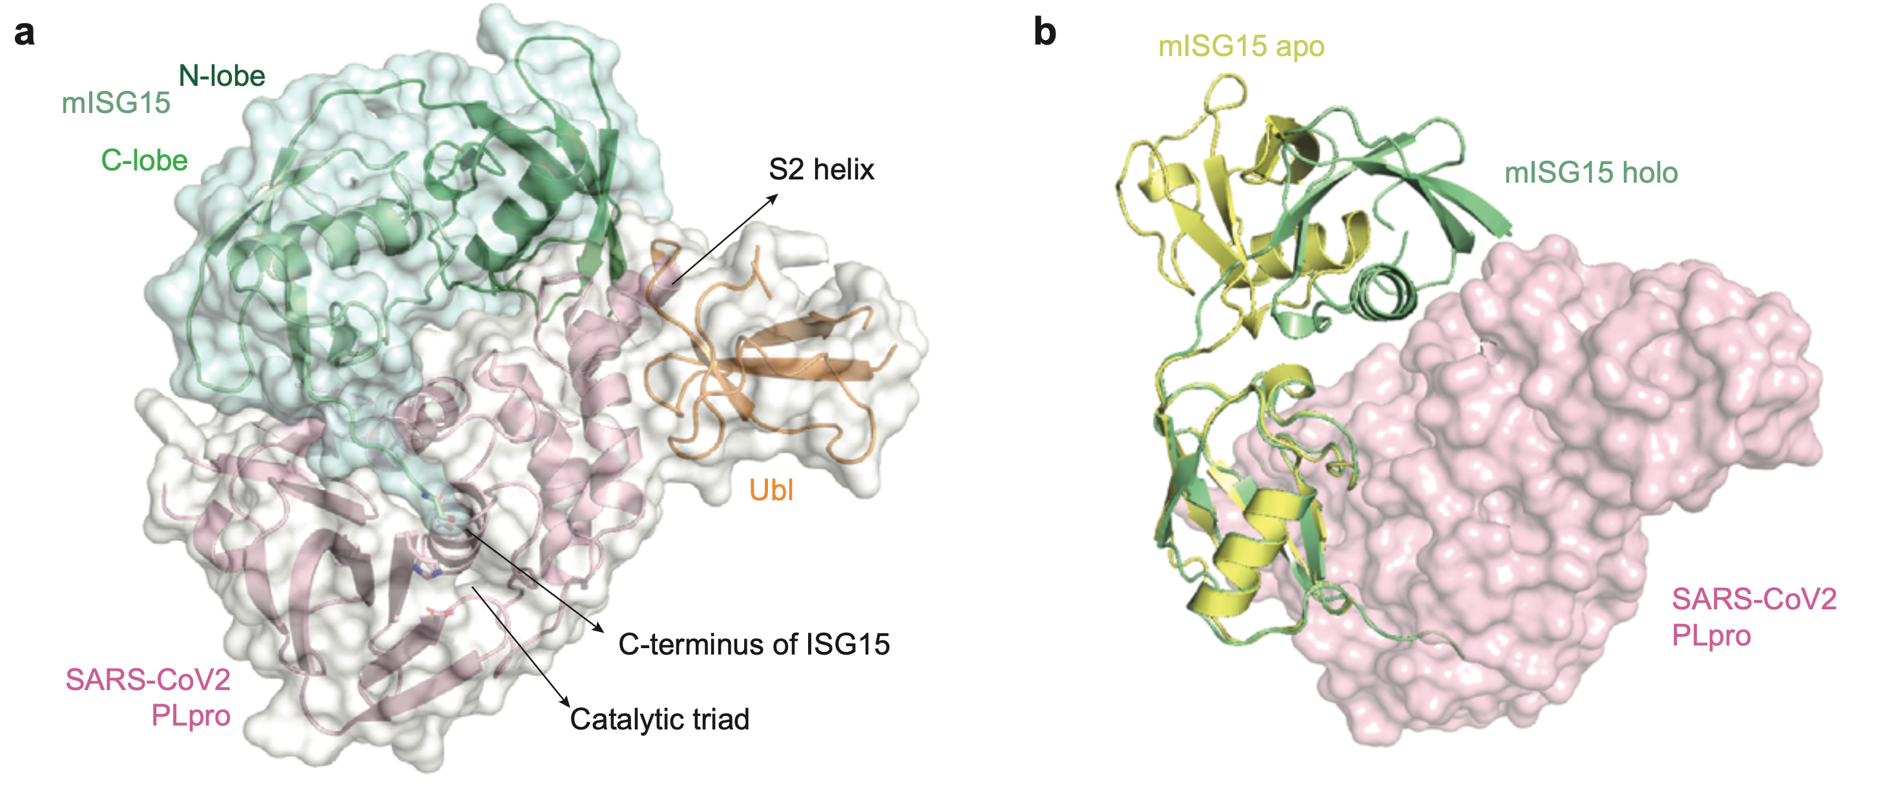 Crystal structure of a PLproCoV2 - ubiquitin-like protein ISG15 complex. From the paper under review in Nature, Donghyuk Shin, et al. I. Dikik DOI:10.21203/rs.3.rs-27134/v1